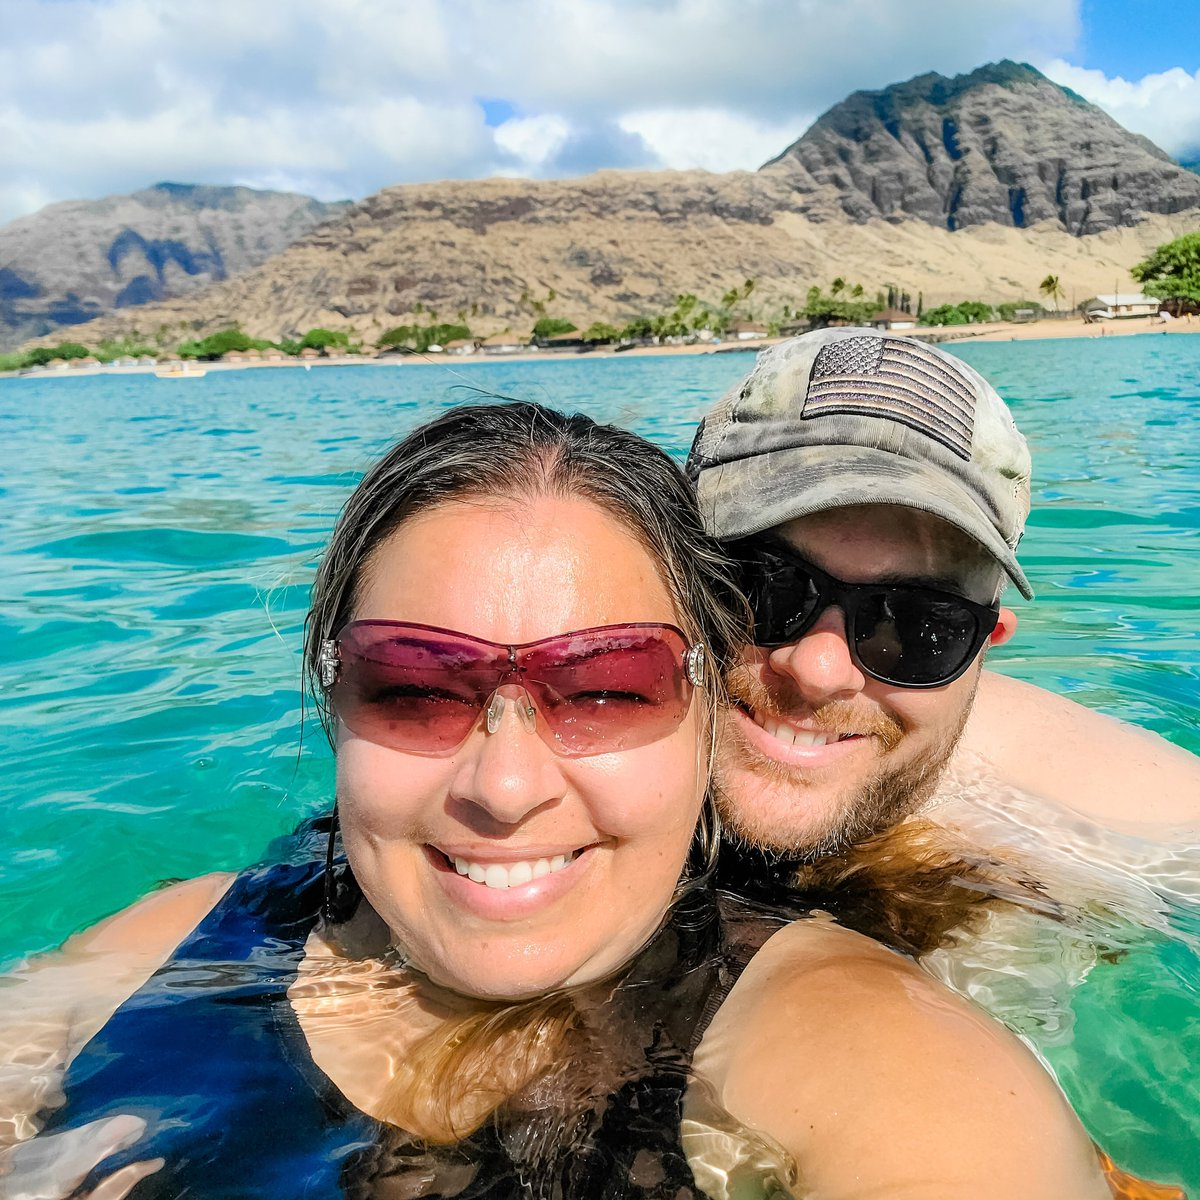 Sometimes you just need a beach day! 😎 Spending time with the family is always special. ❤ I love moments like these. Happy Sunday everyone❣ #hawaii #livinginparadise #aloha #oahu #sundayfunday